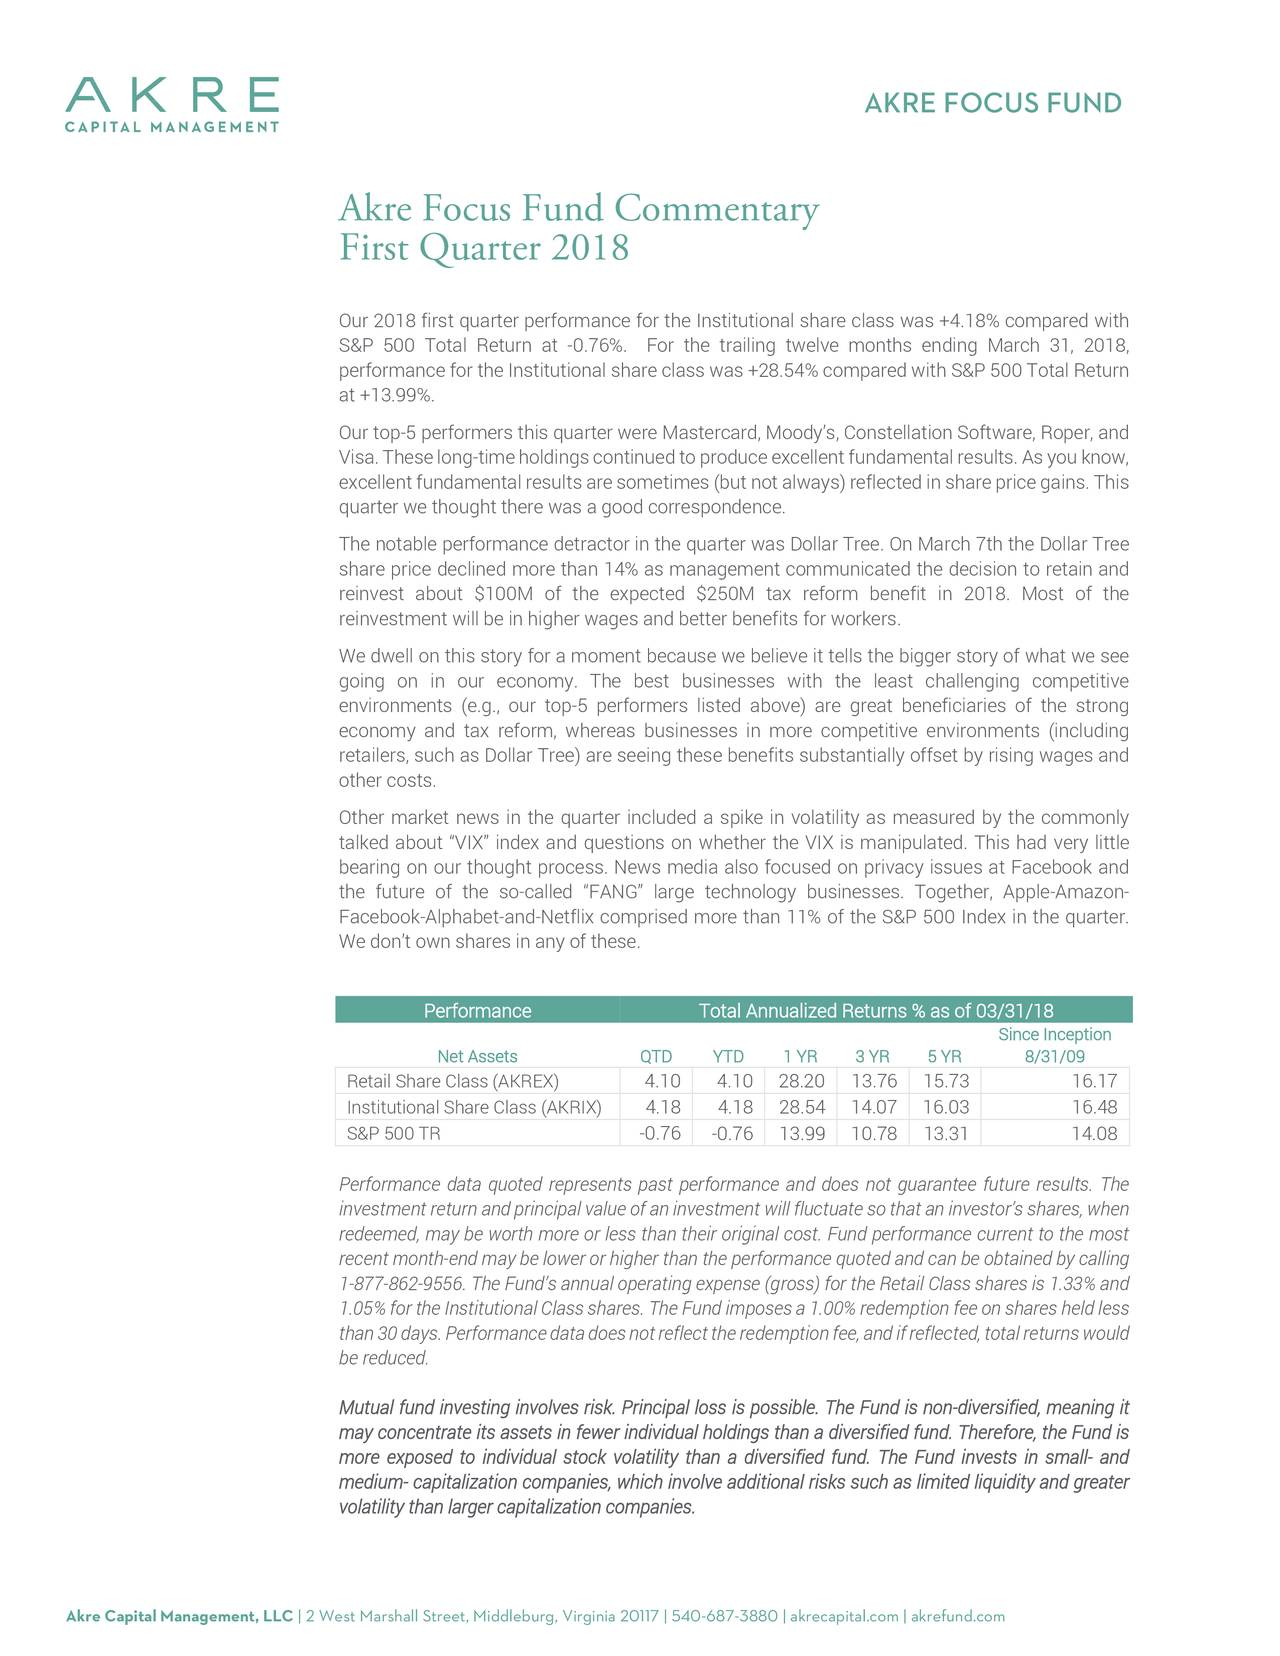 akre focus fund commentary first quarter 2018